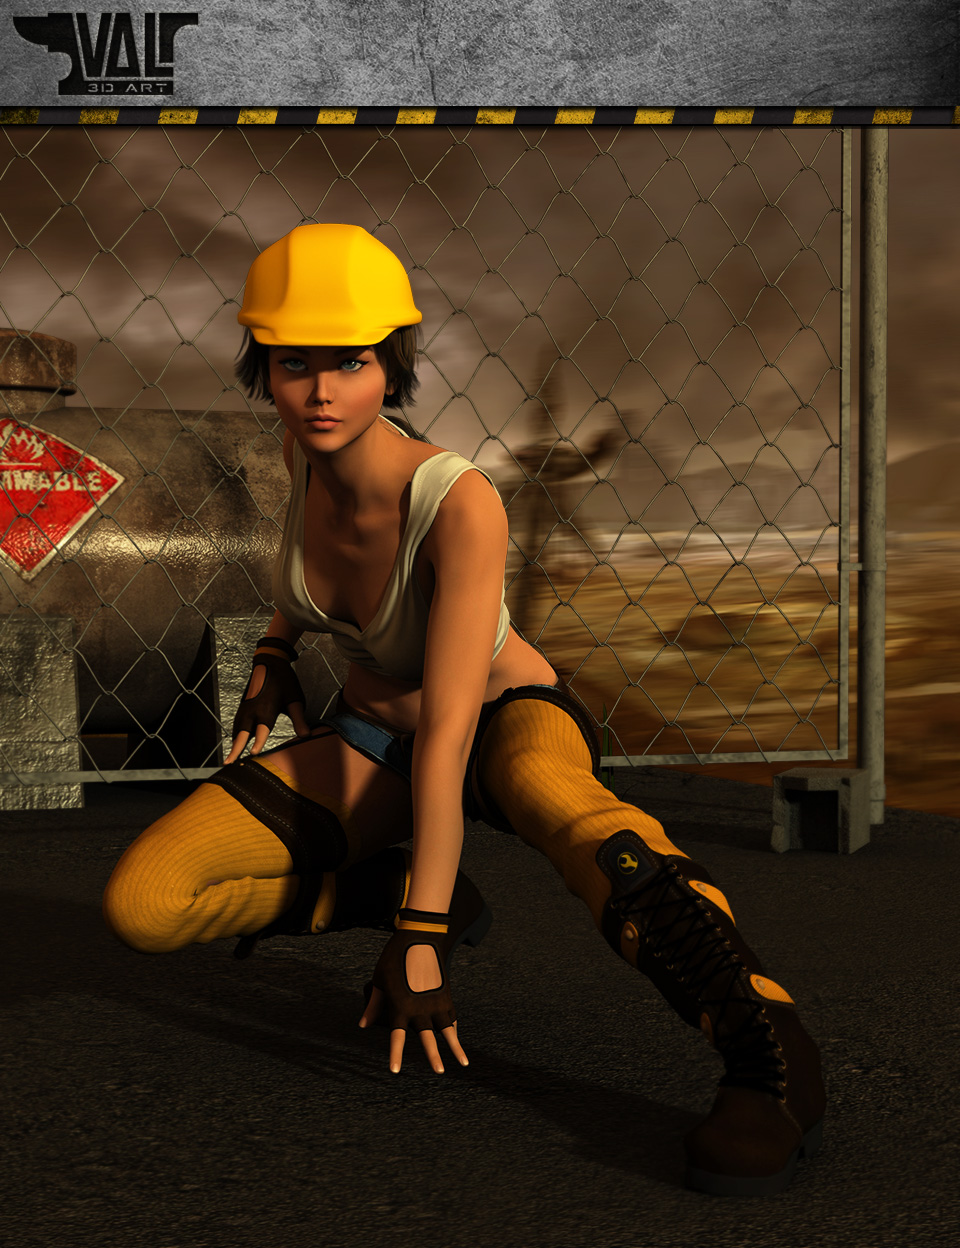 Wasteland Poses by: Val3dart, 3D Models by Daz 3D